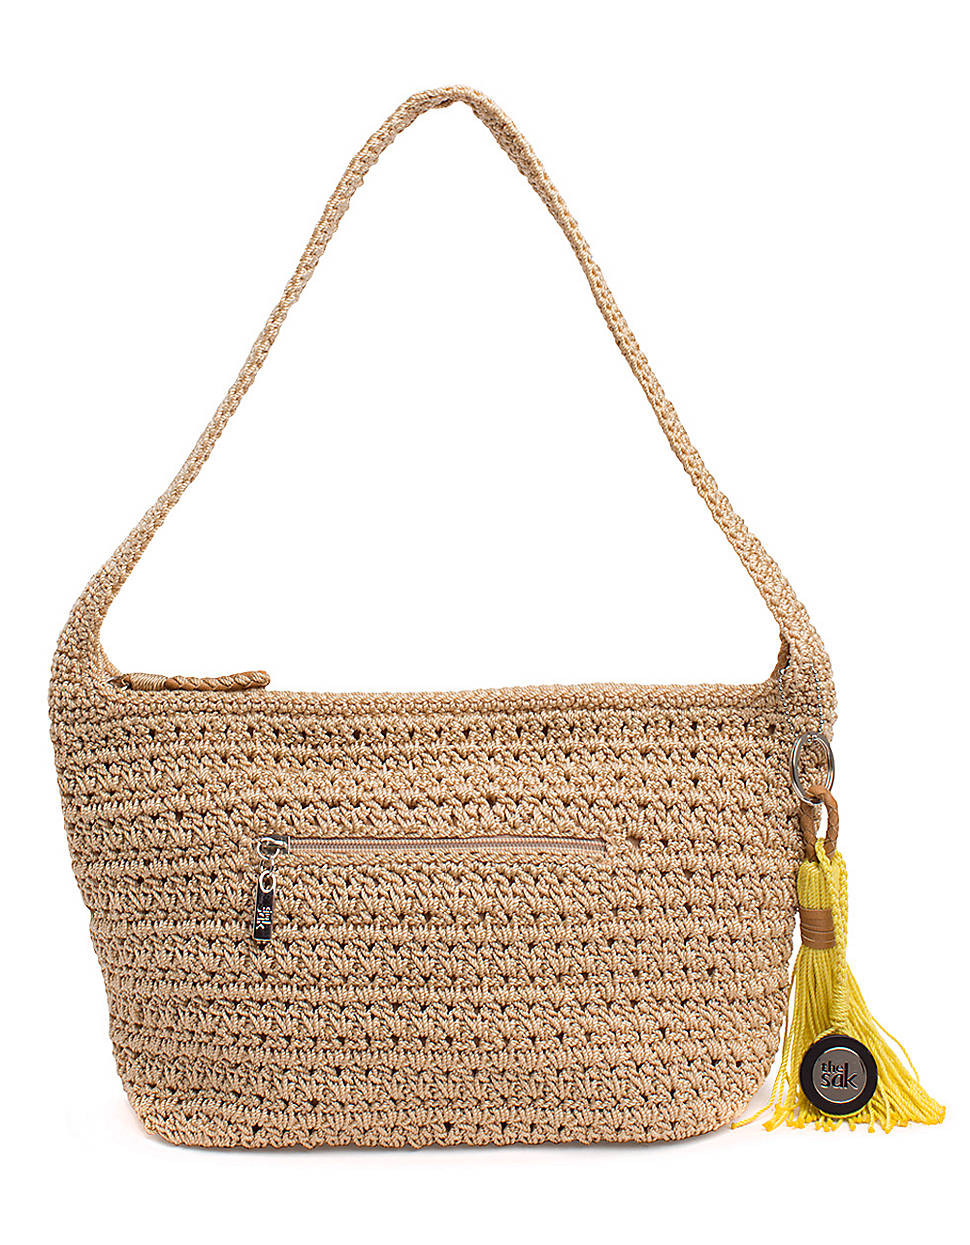 The Sak Crochet Luxury the Sak Casual Classics Crochet Hobo Bag In Beige Bamboo Of The Sak Crochet Awesome the Sak Black Crochet Cross Body Shoulder Bag Purse Handbag